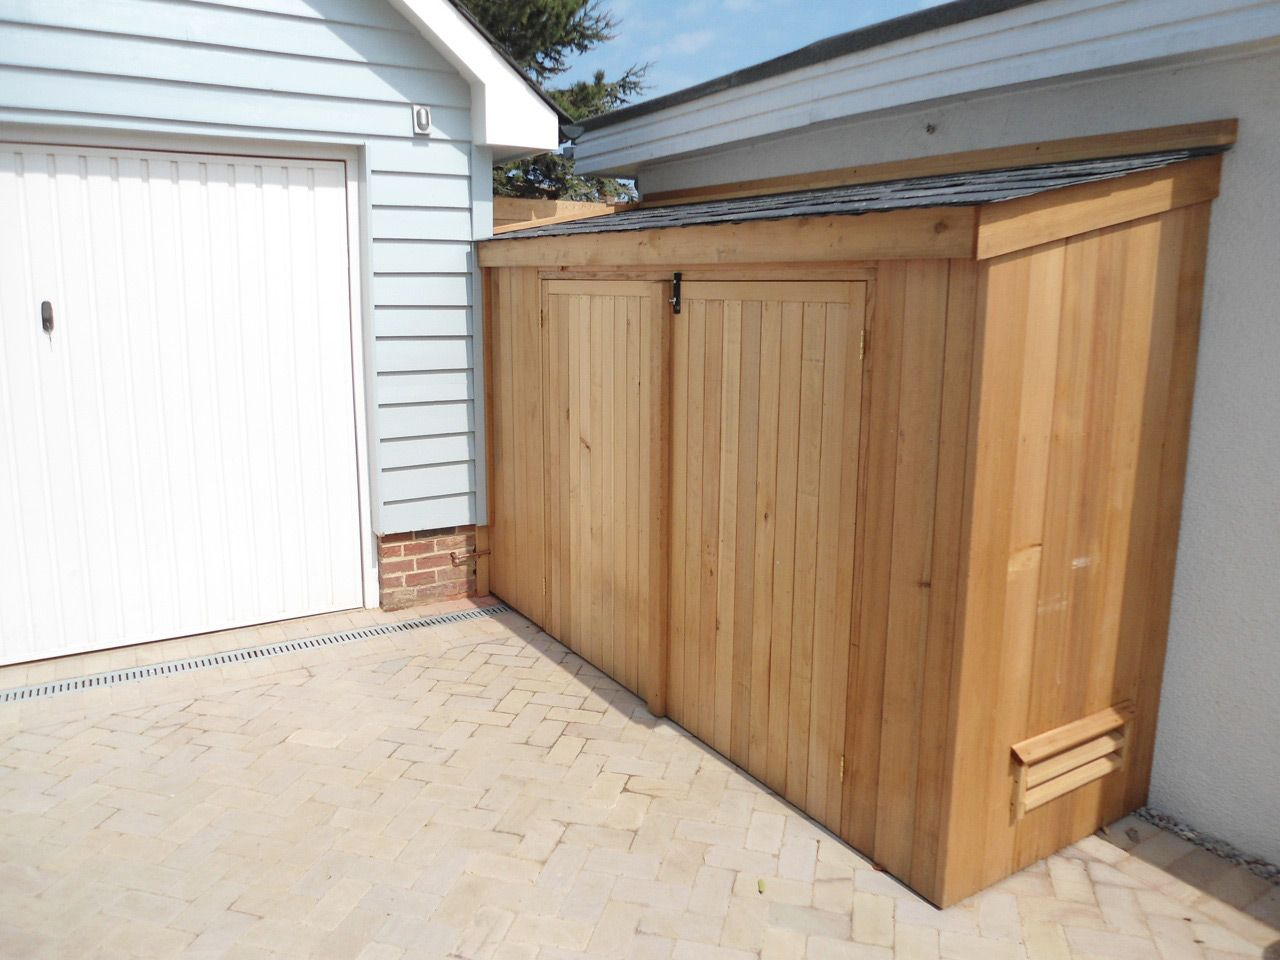 to watch storage diy building build a how youtube video shed yard garden sheds